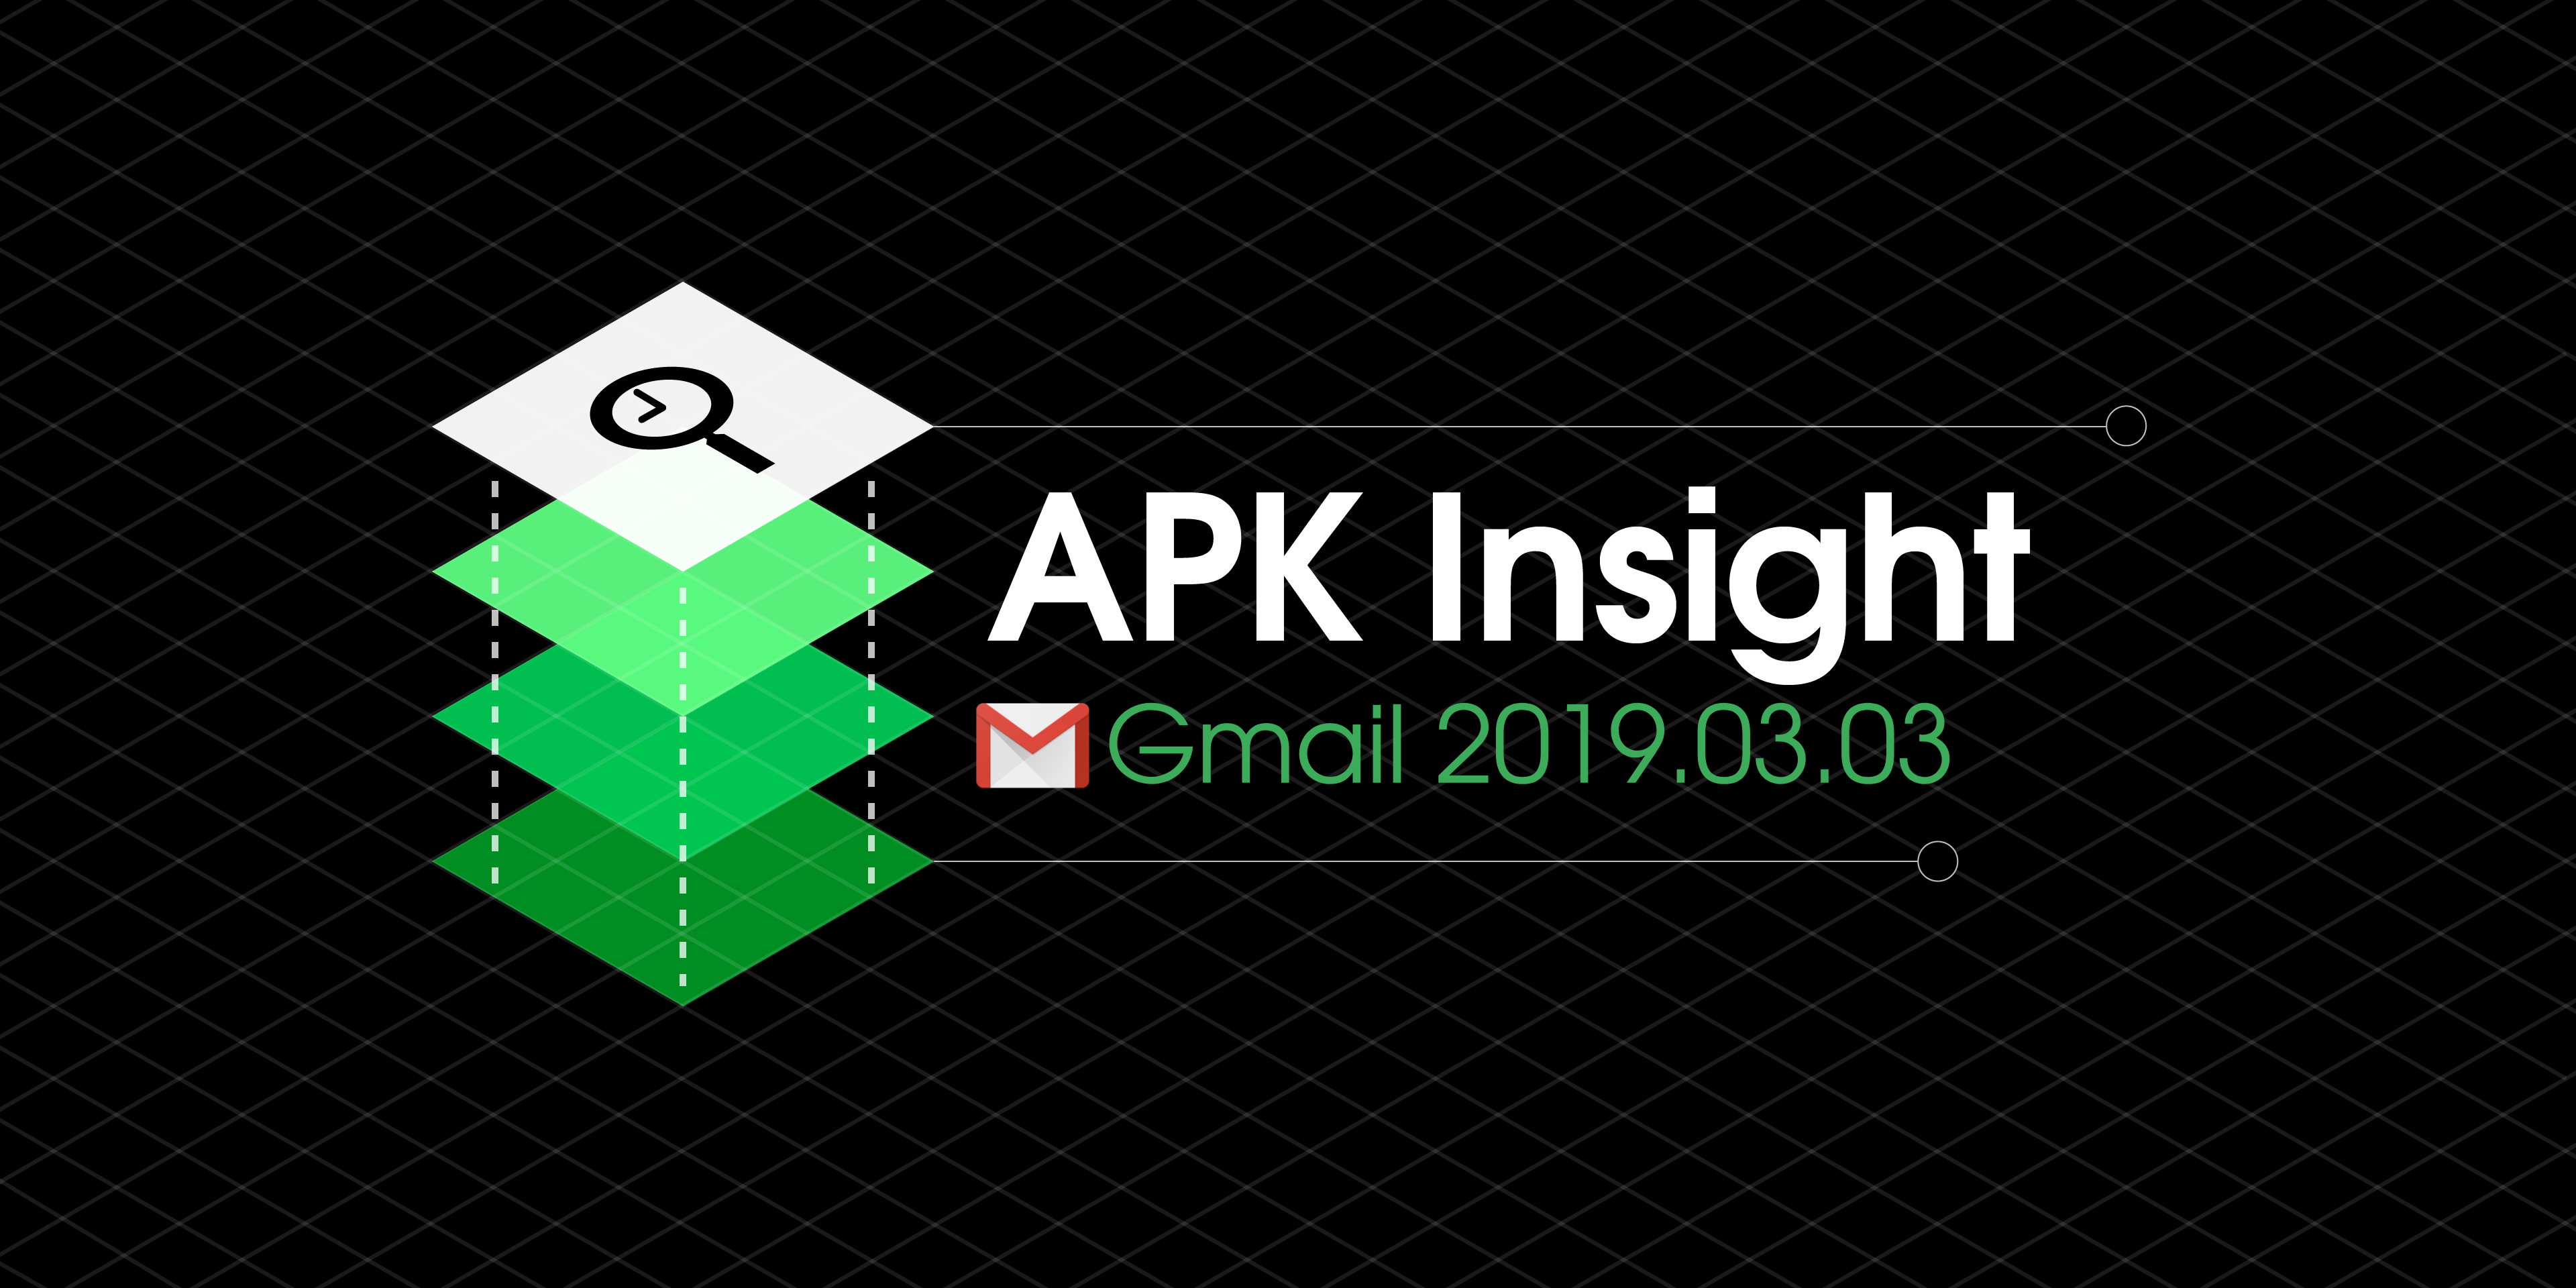 Gmail 2019.03.03 preps scheduling emails, 15th birthday, enterprise lock requirement [APK Insight]